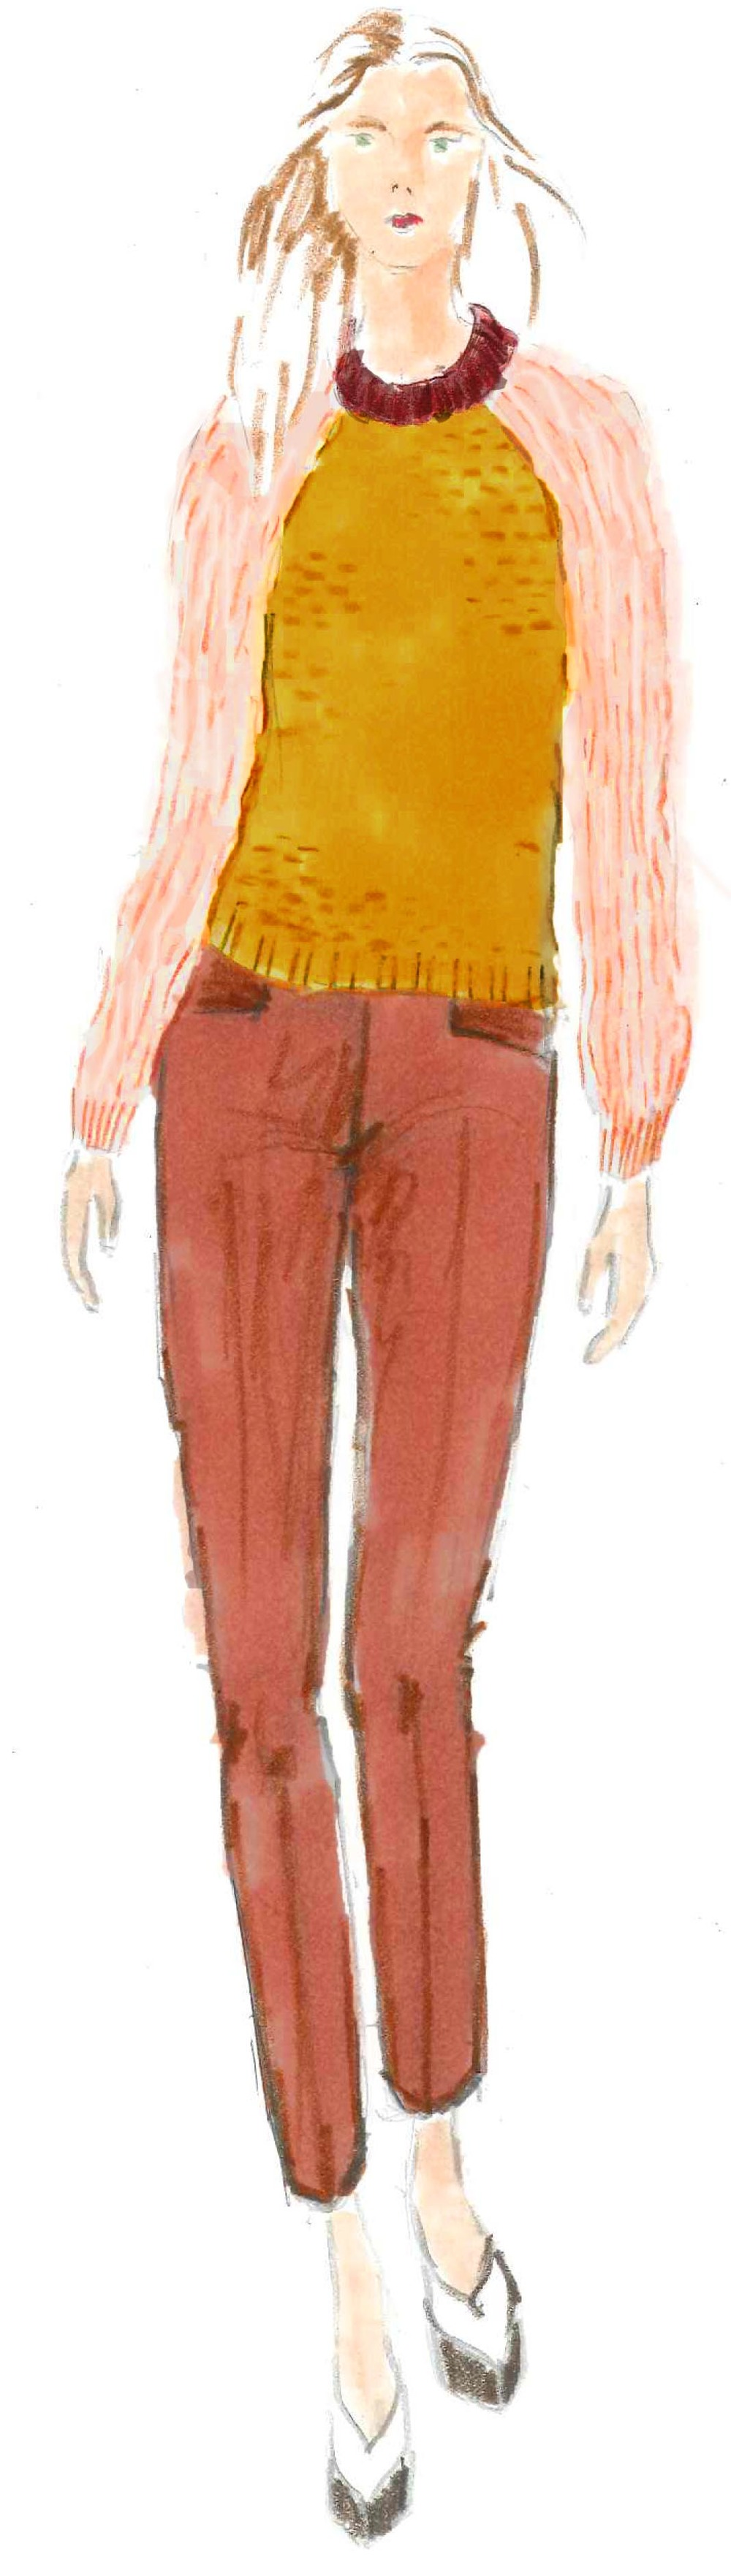 ochre_pink_wine_sweater_sketch.jpg